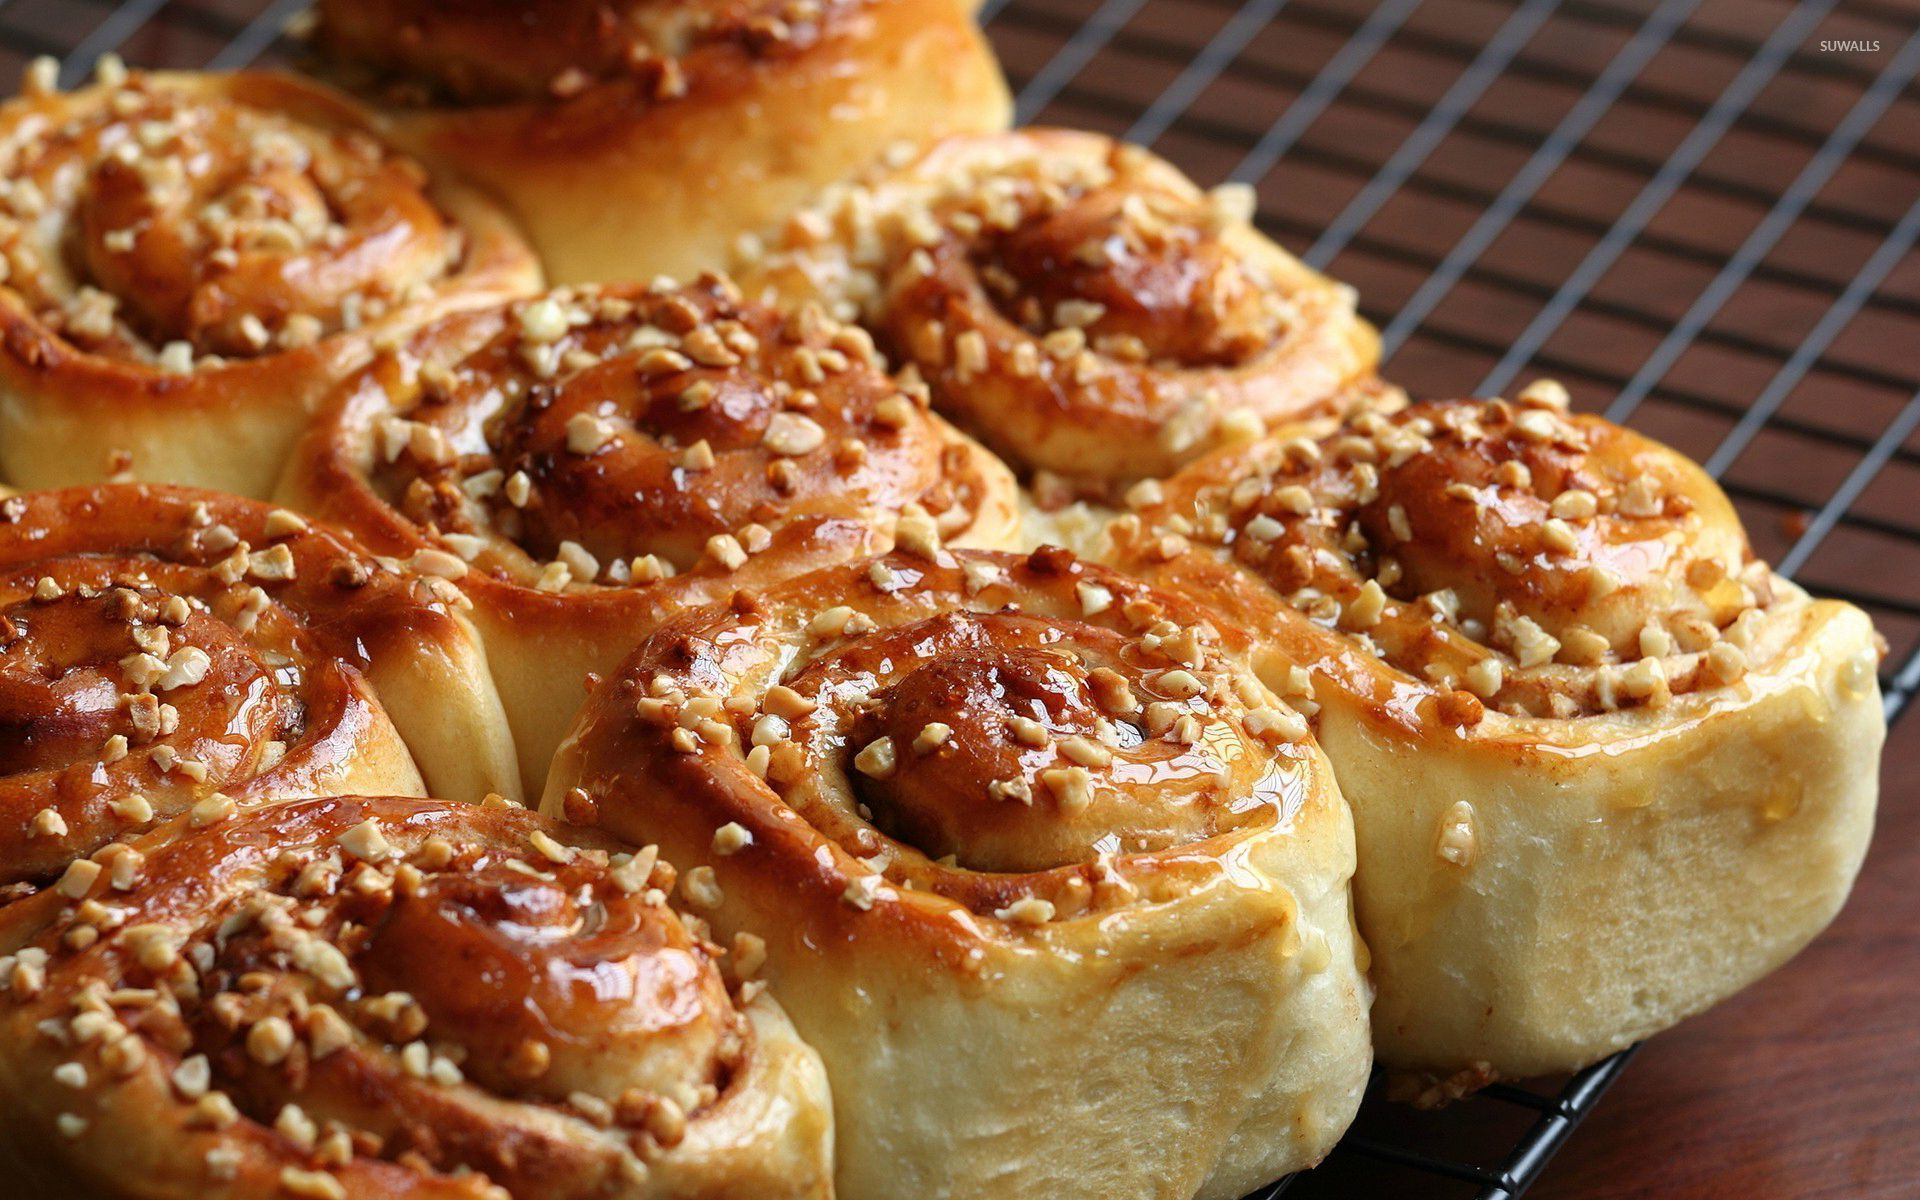 Cinnamon rolls wallpaper photography wallpapers 27163 for Wallpaper roll